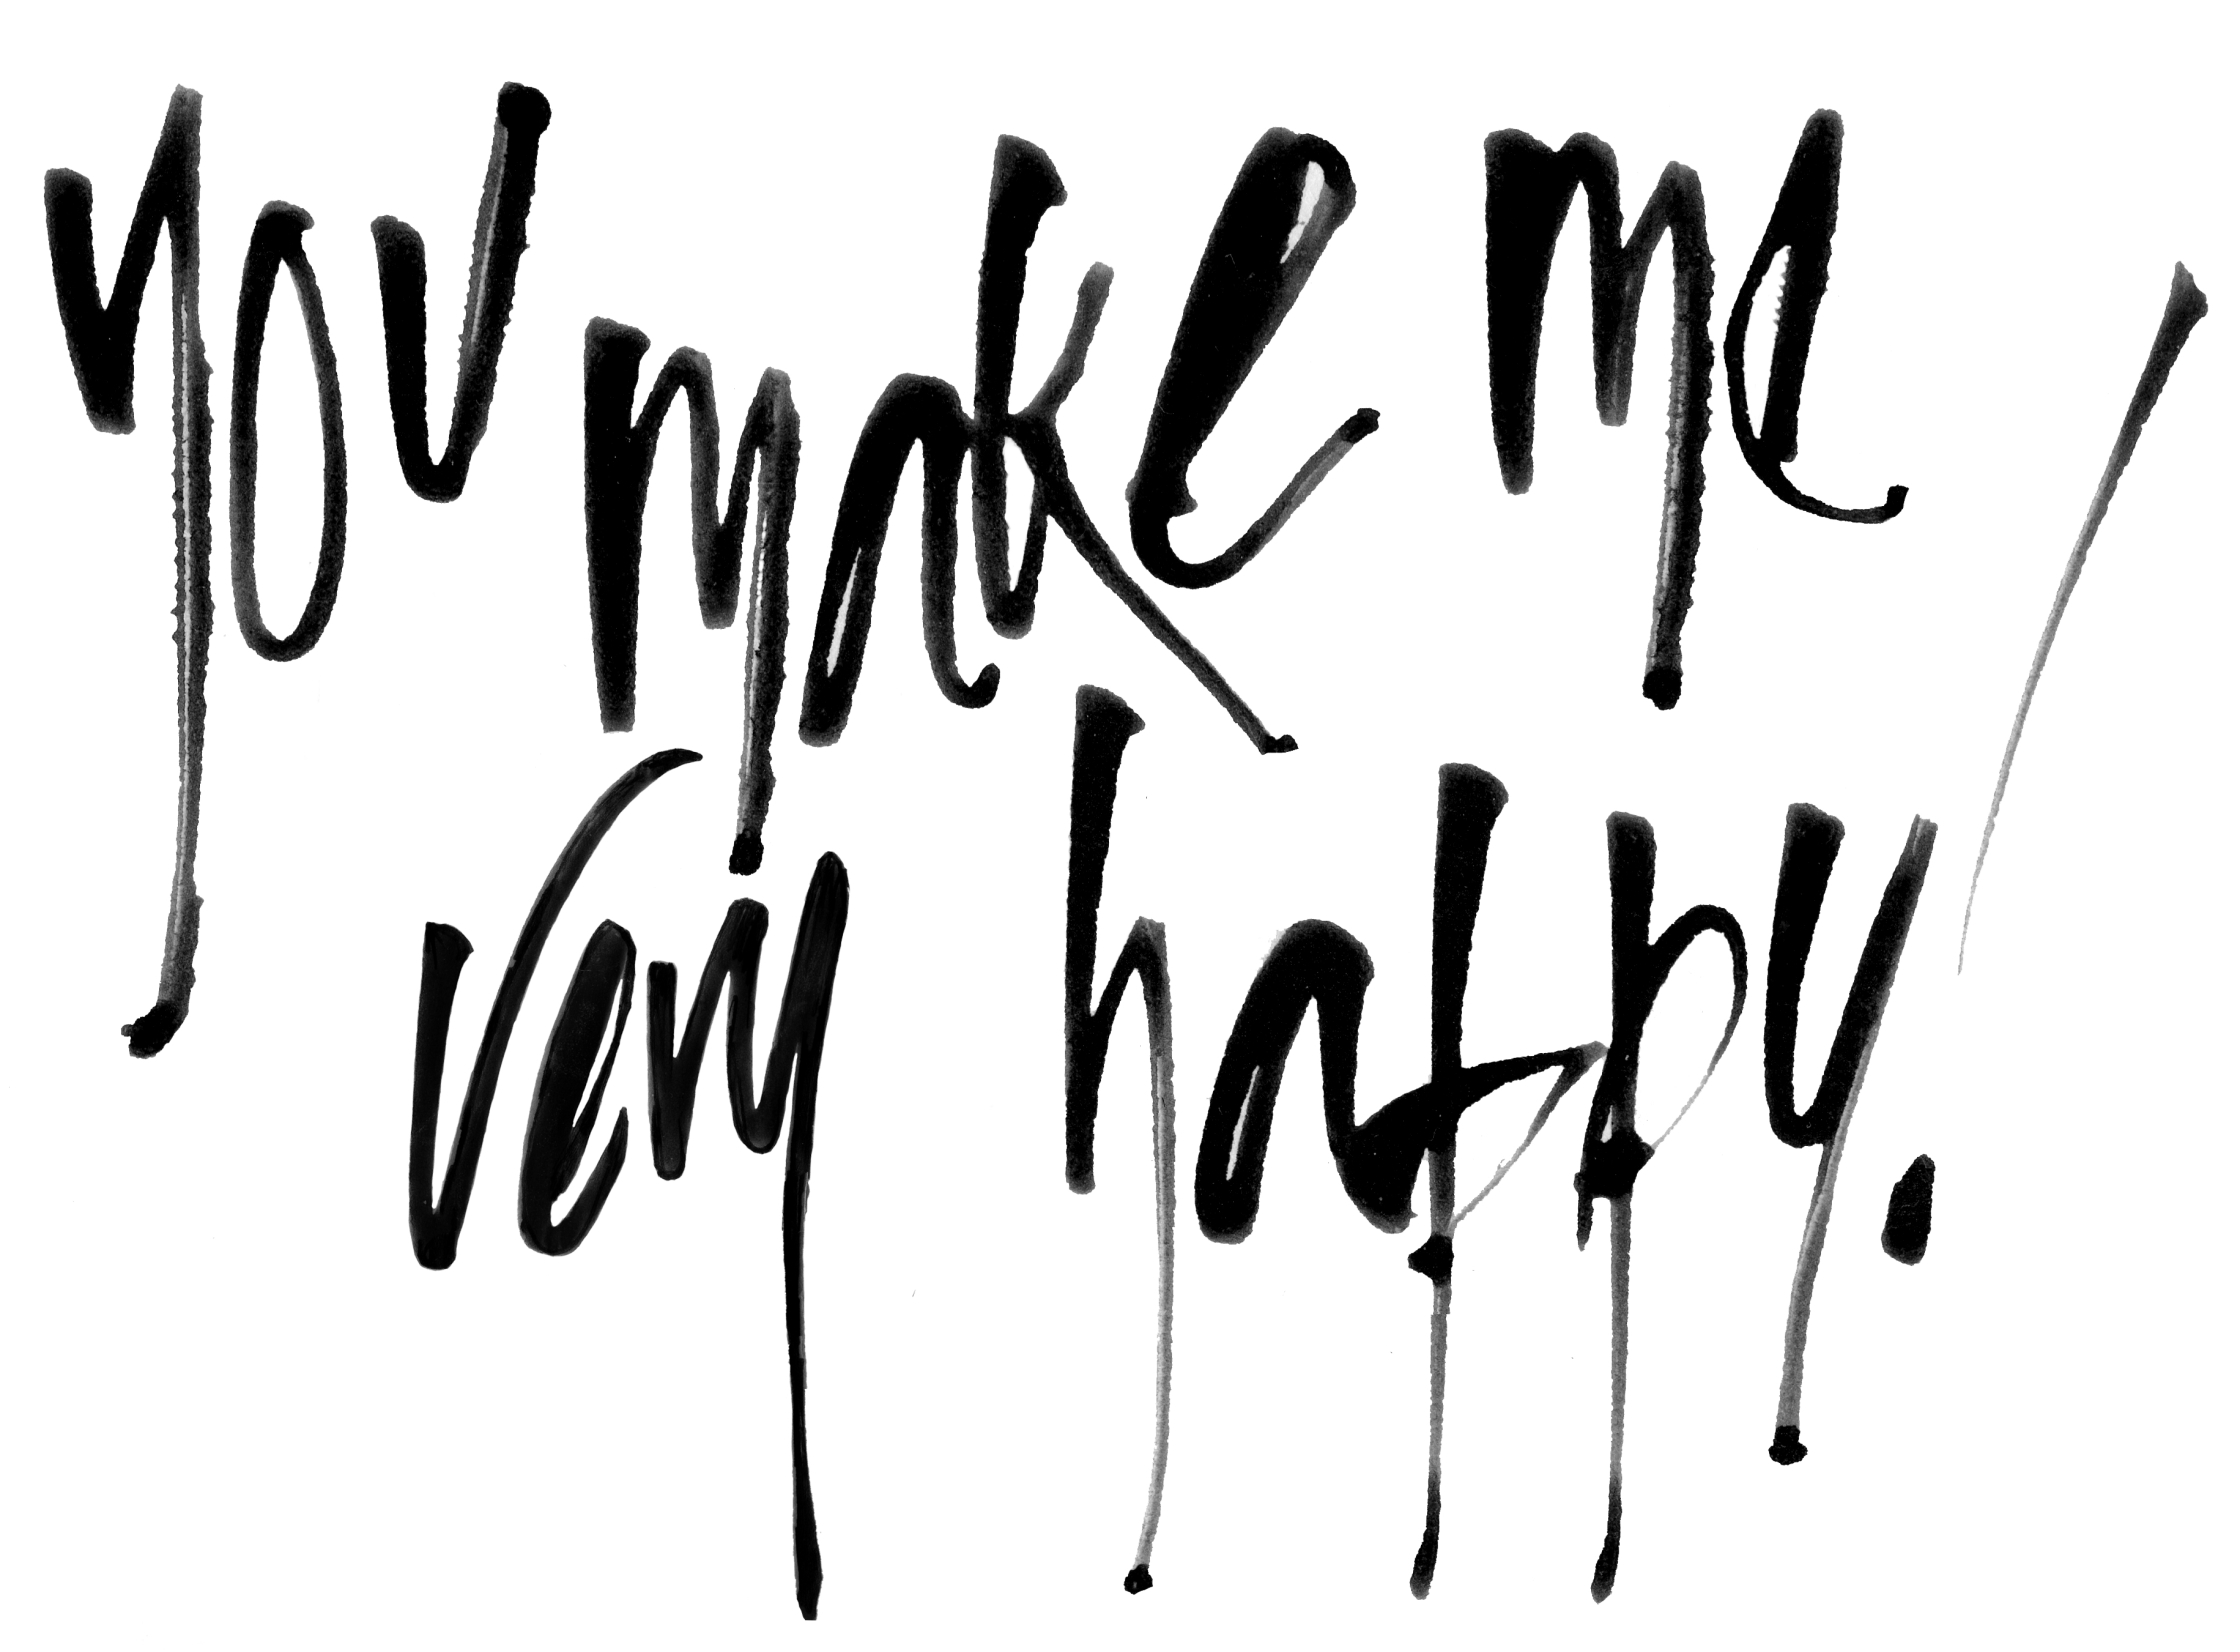 You Make Me Very Happy